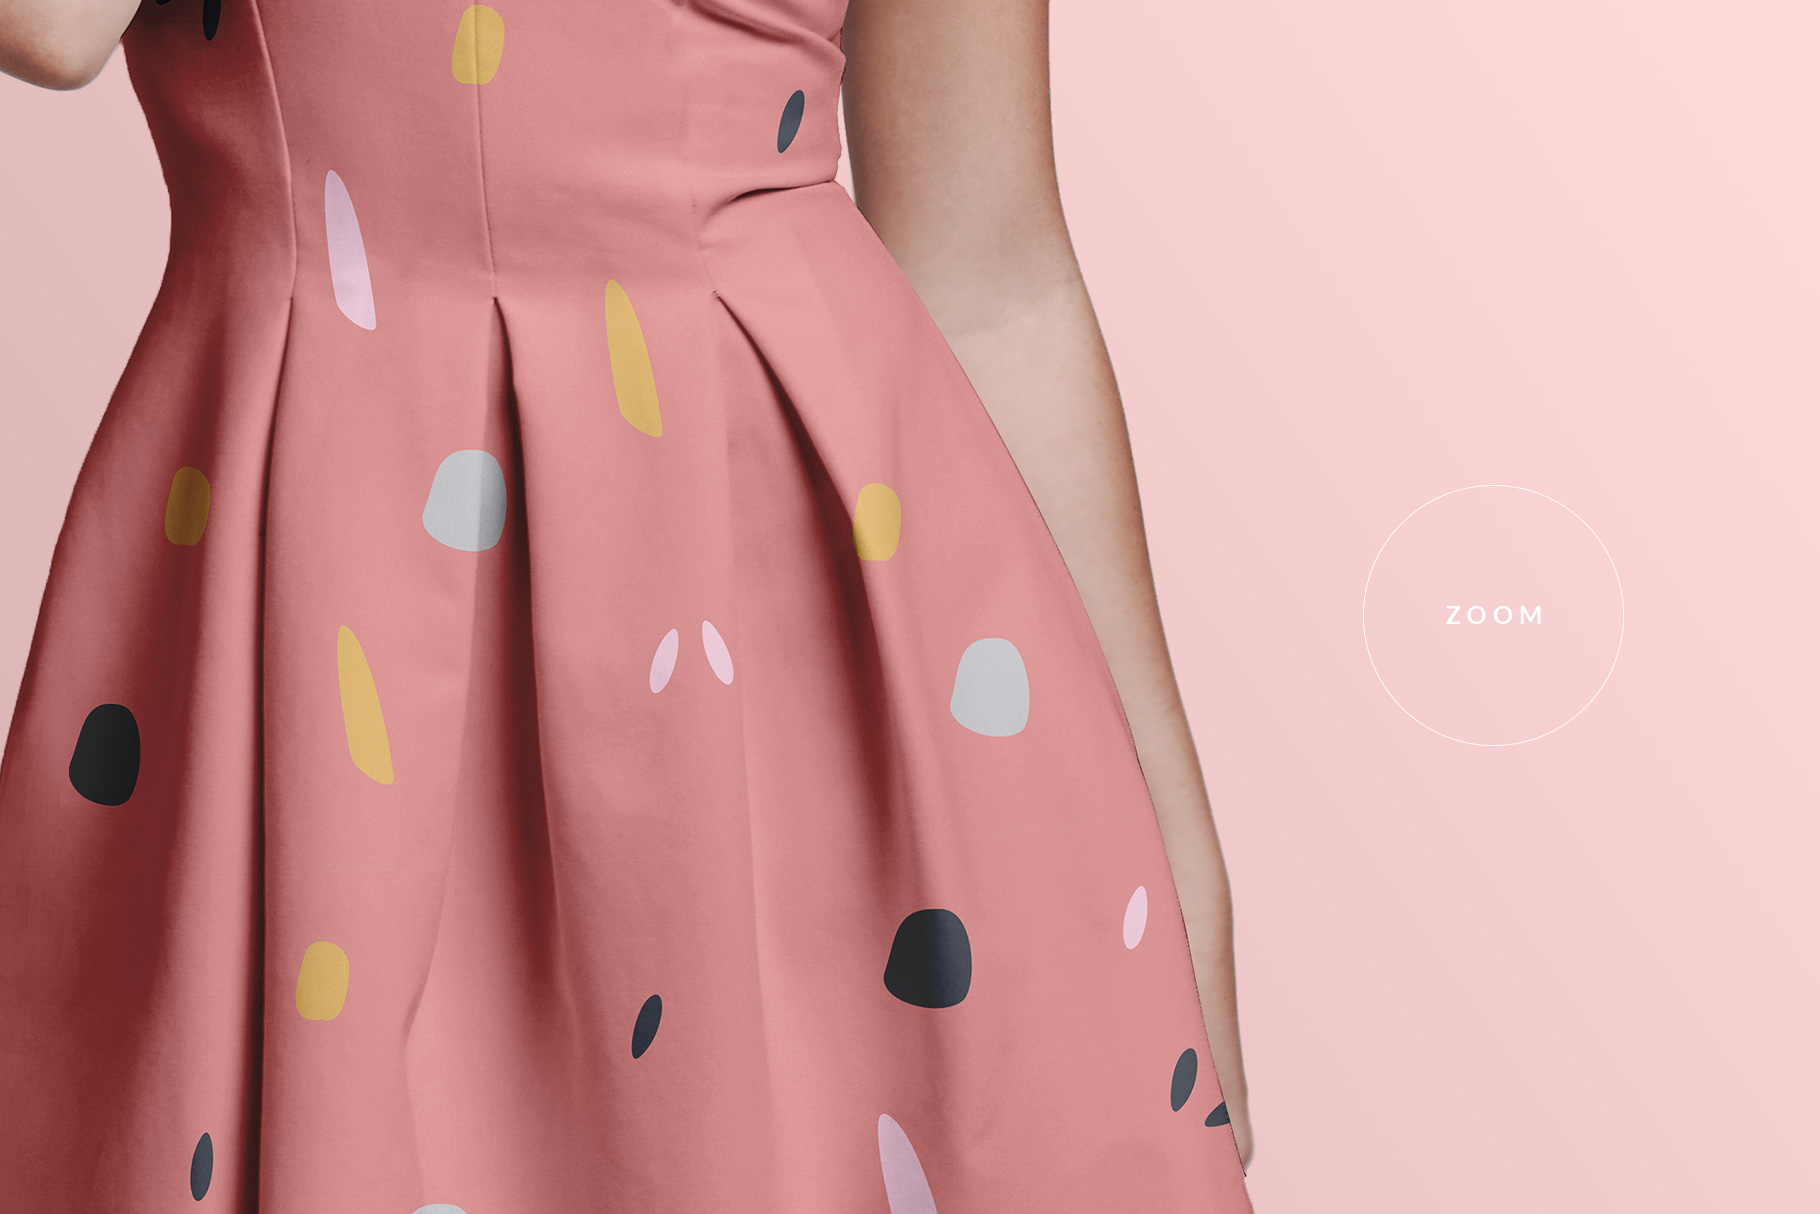 zoomed in image of the female short party dress mockup